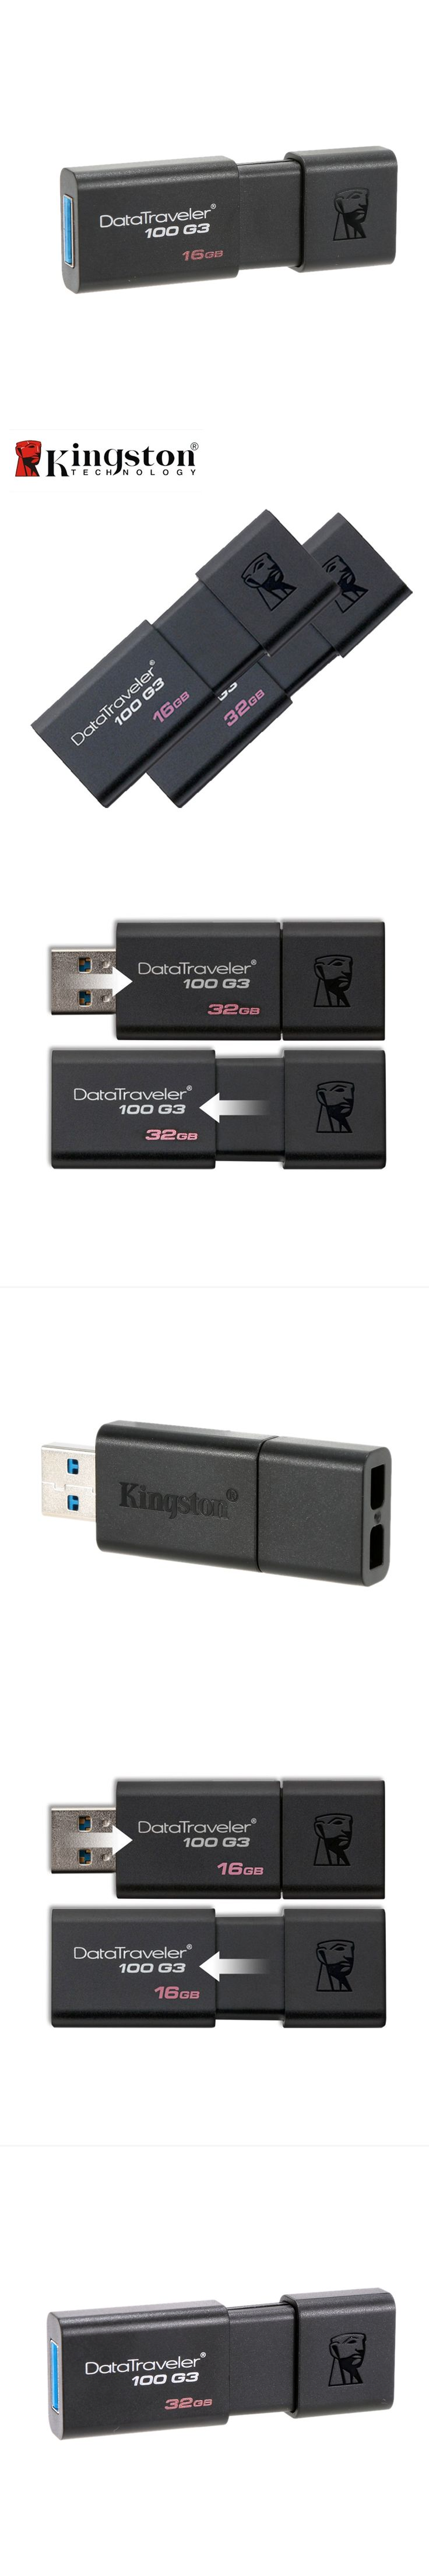 Kingston DT100G3 USB Flash Drive 32GB 16GB Pen Drive Pendrive 64 GB 128 GB Memoria USB Memory Stick Flash USB 3.0